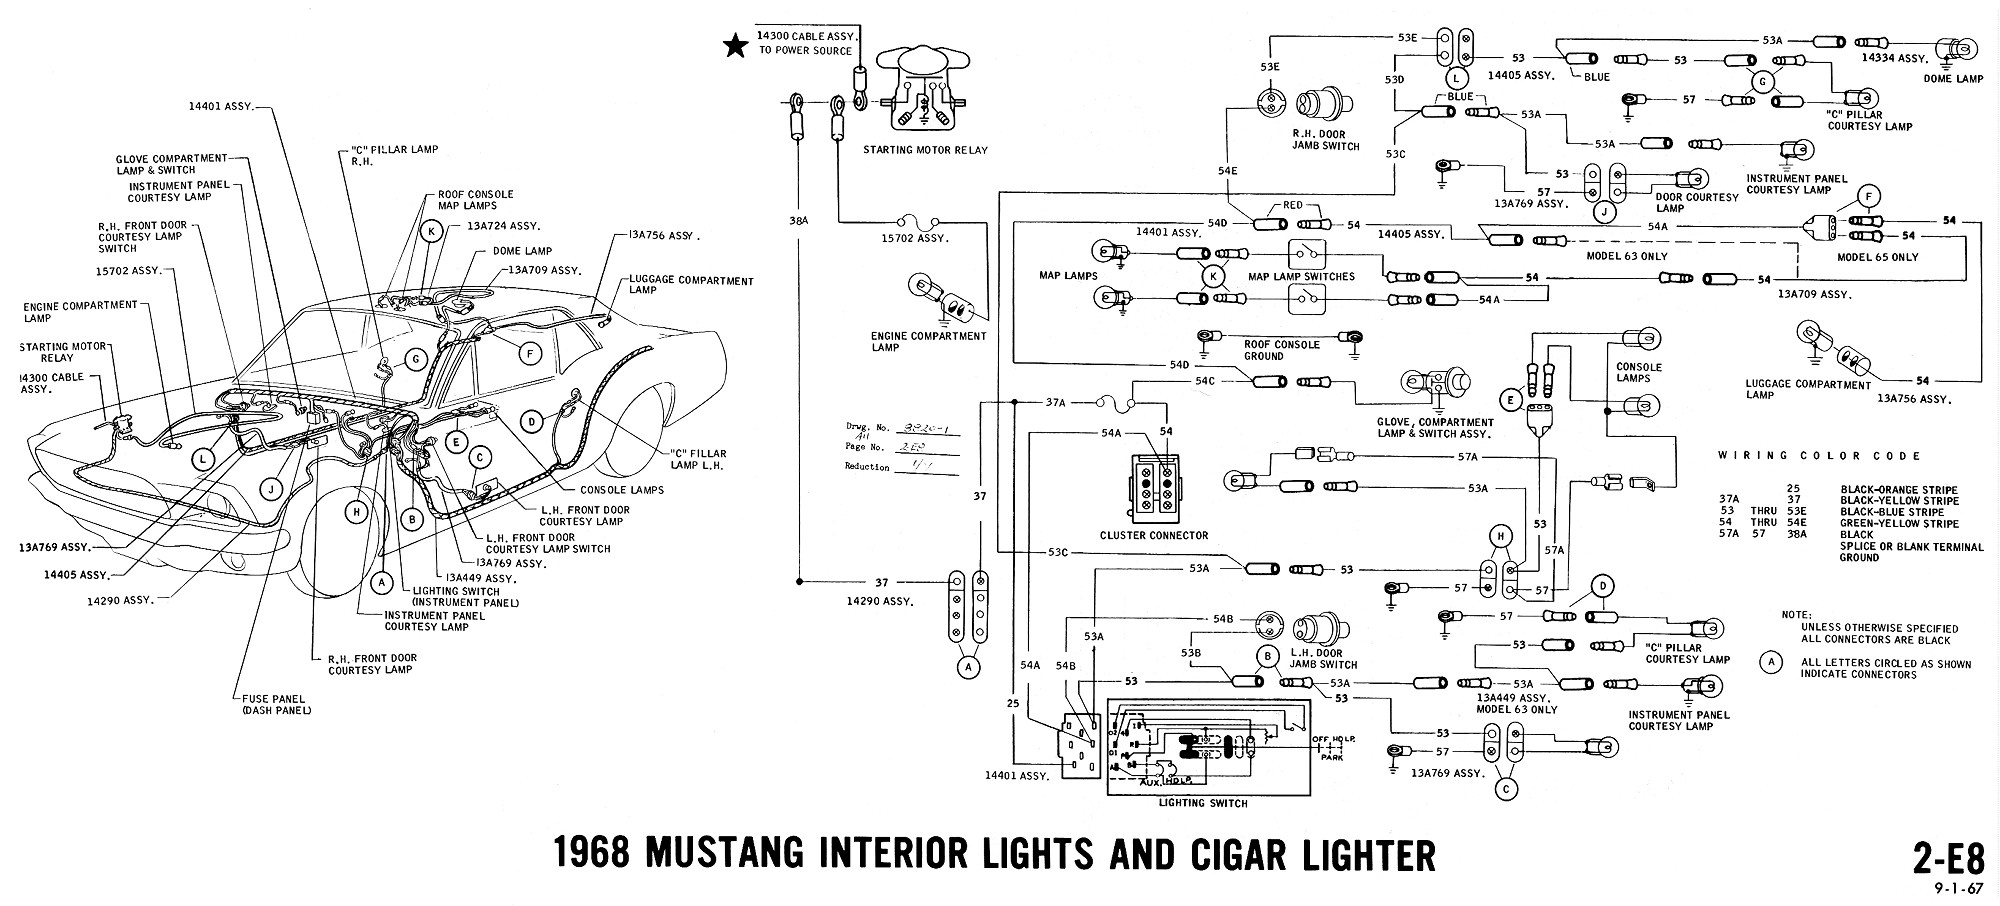 1968 mustang wiring diagram interior lights cigar lighter 1968 mustang wiring diagrams and vacuum schematics average joe mustang wiring harness diagram at suagrazia.org